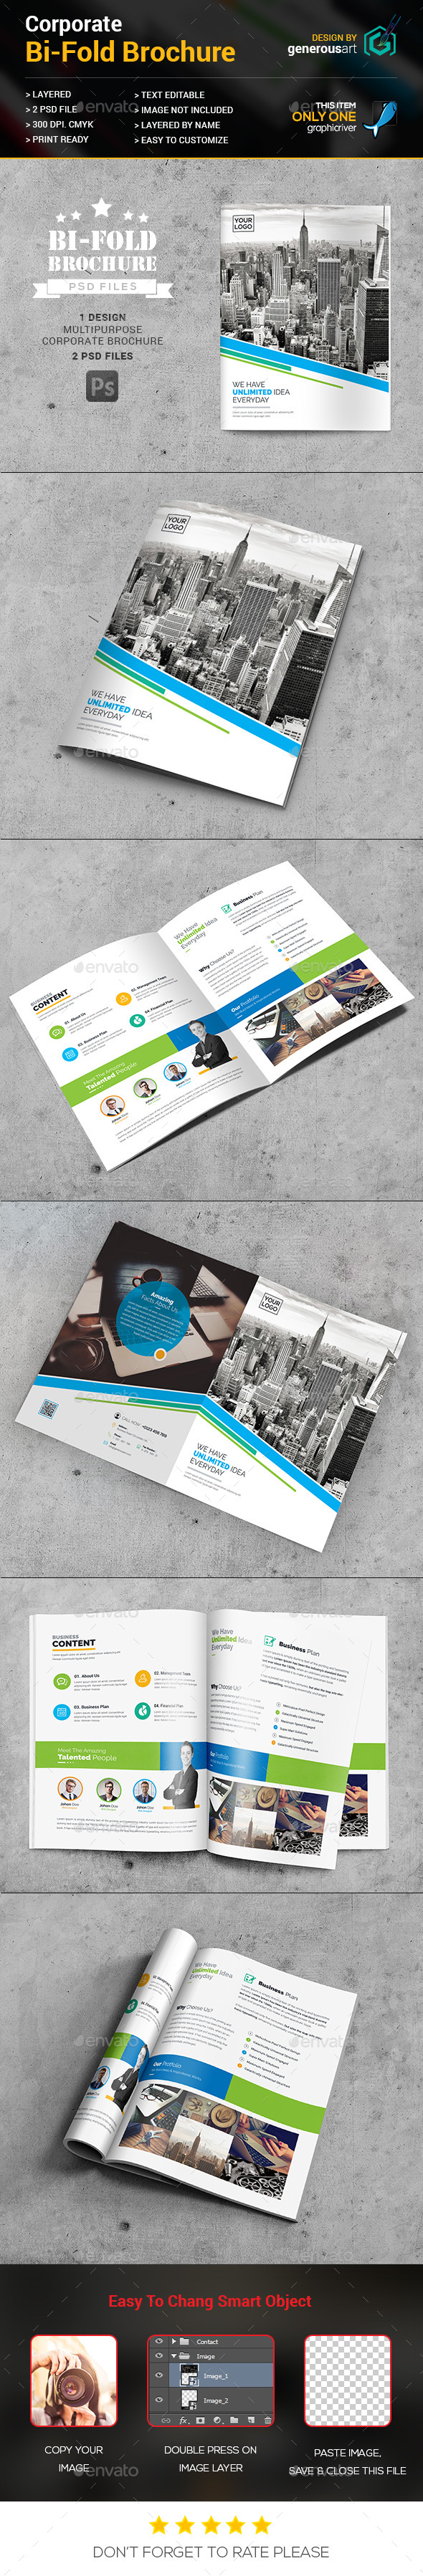 Bi-Fold Business Brochure - Corporate Brochures